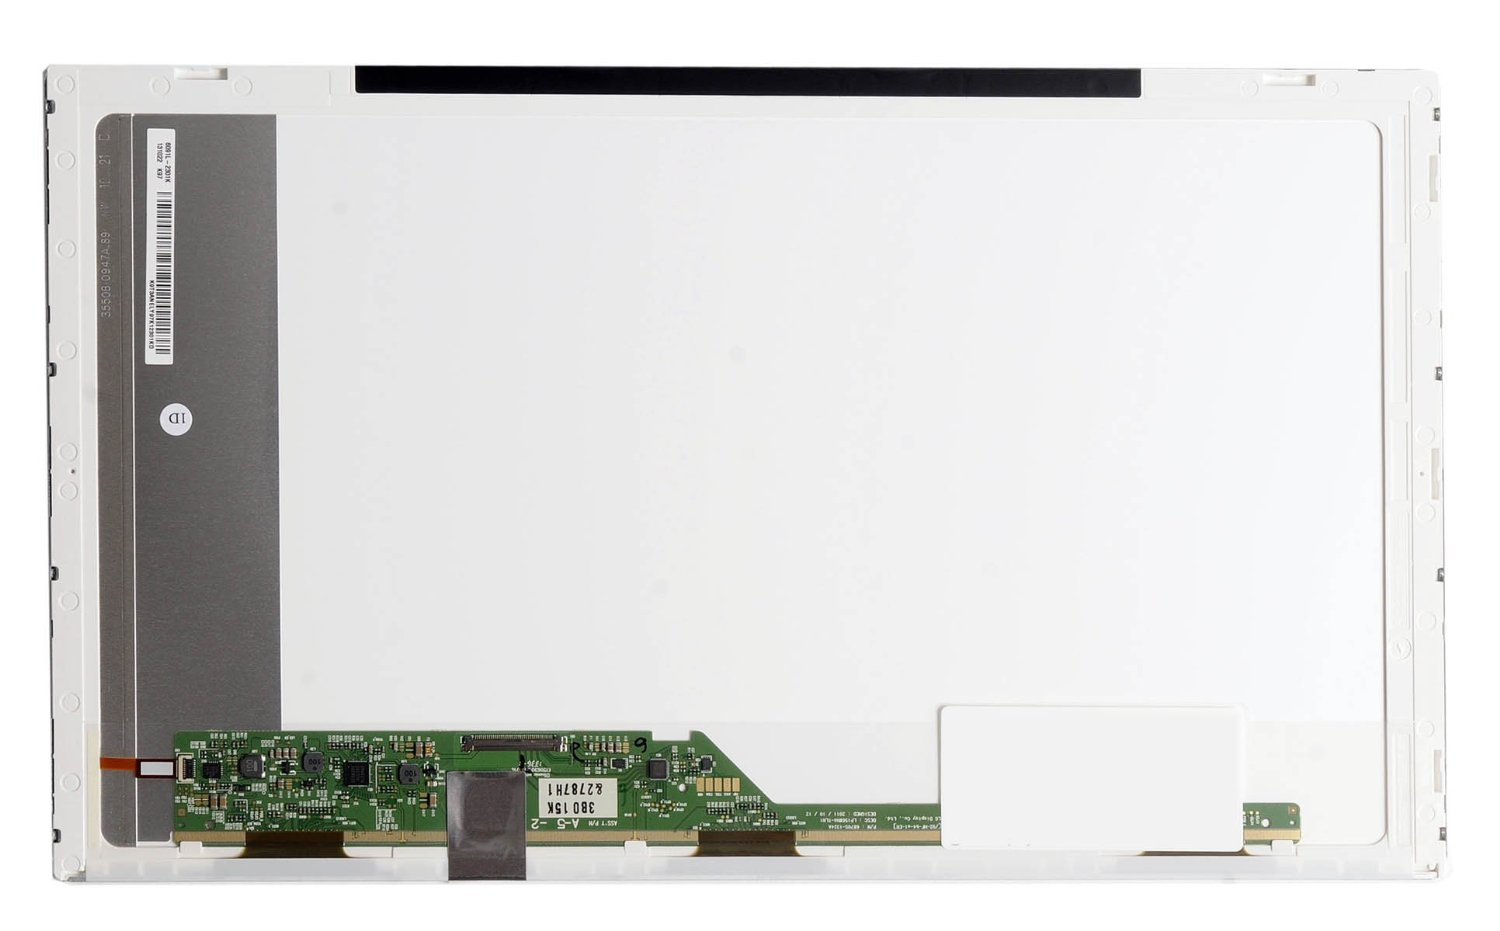 For Lenovo IdeaPad Z565, Z570, Z570A, V570, Y570 New 15.6 HD LED LCD Screen Display биаркат 570 лт во владивостоке